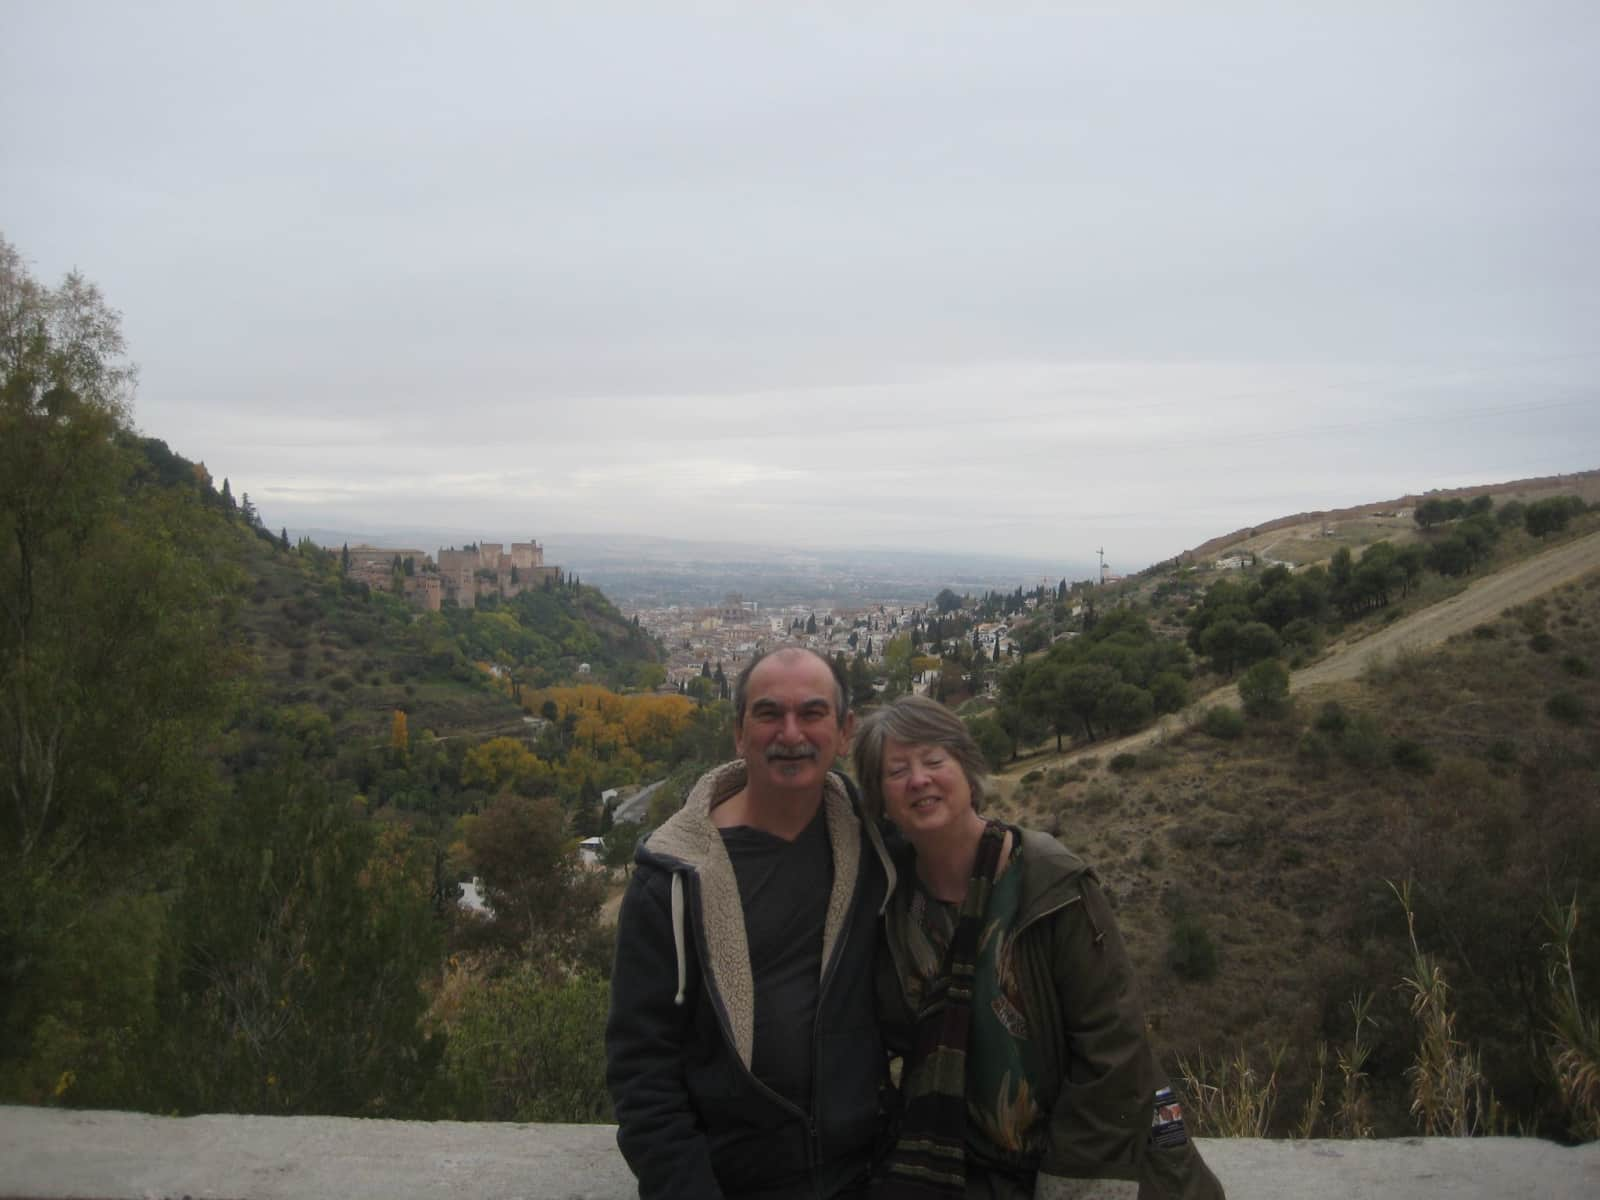 Linda & John from Halstead, United Kingdom